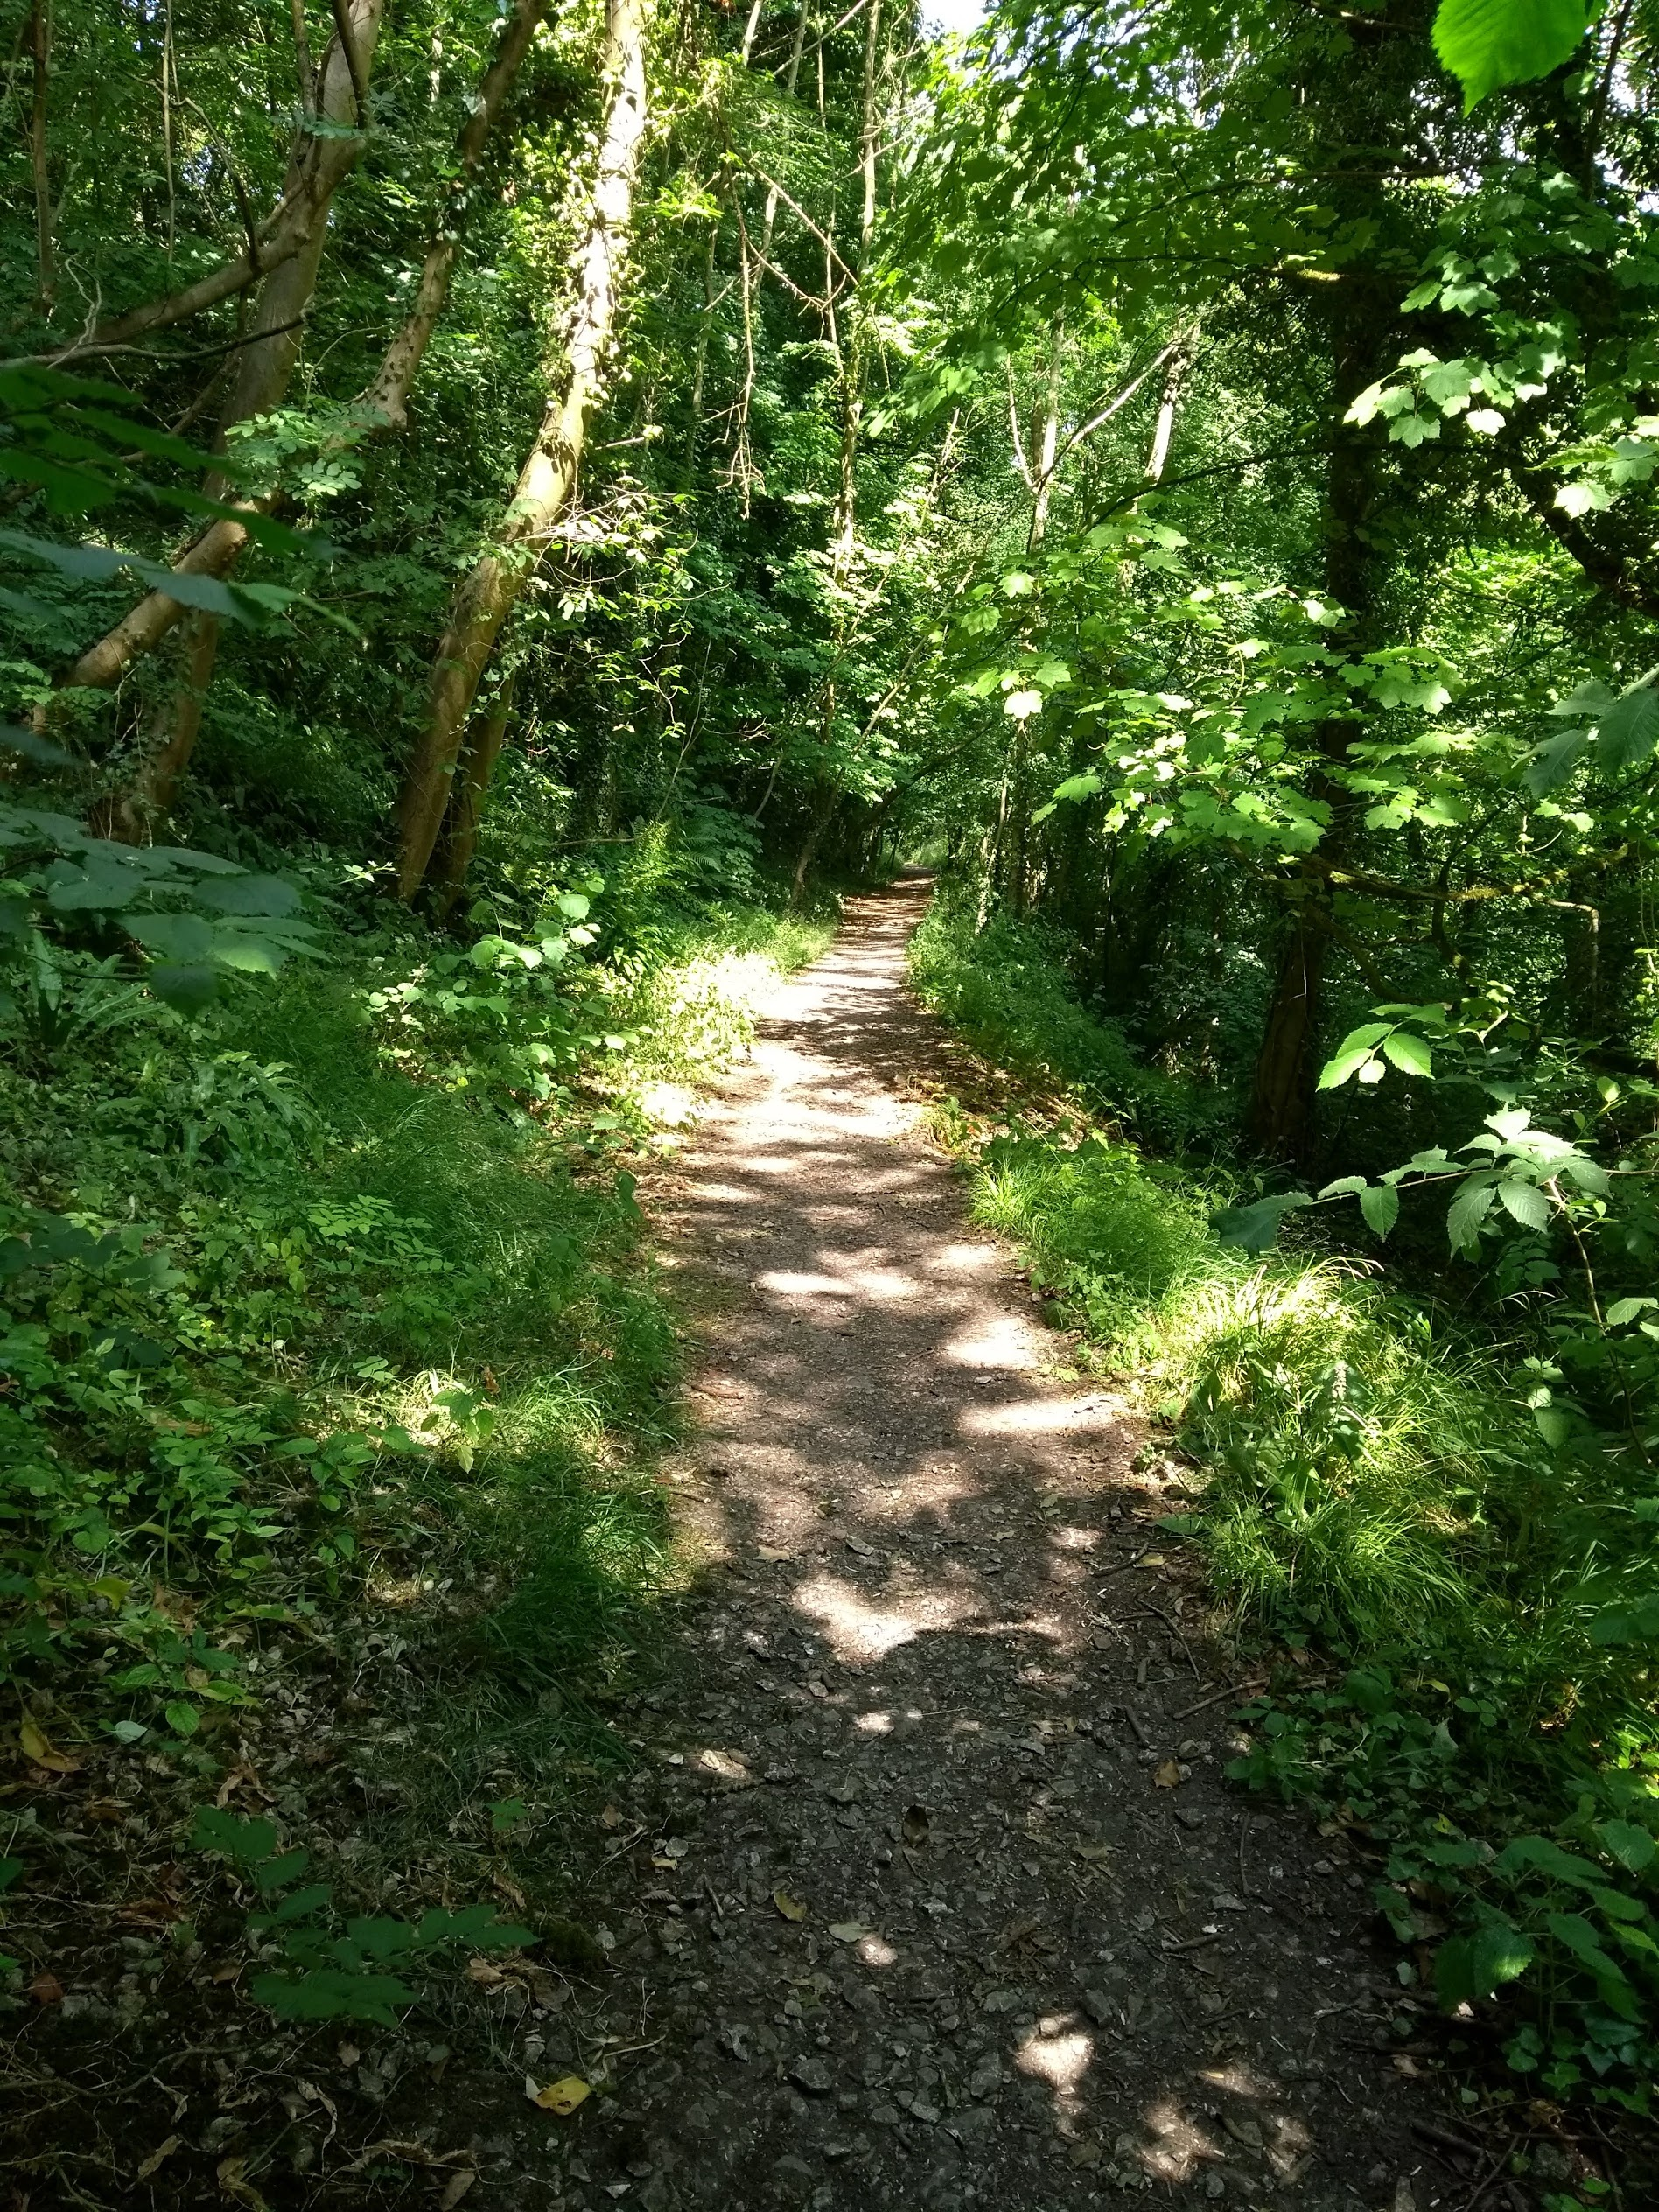 Make a Day of it by going on a walk in the area - There is a beautiful walk which runs past the studio entrance - click here to view it